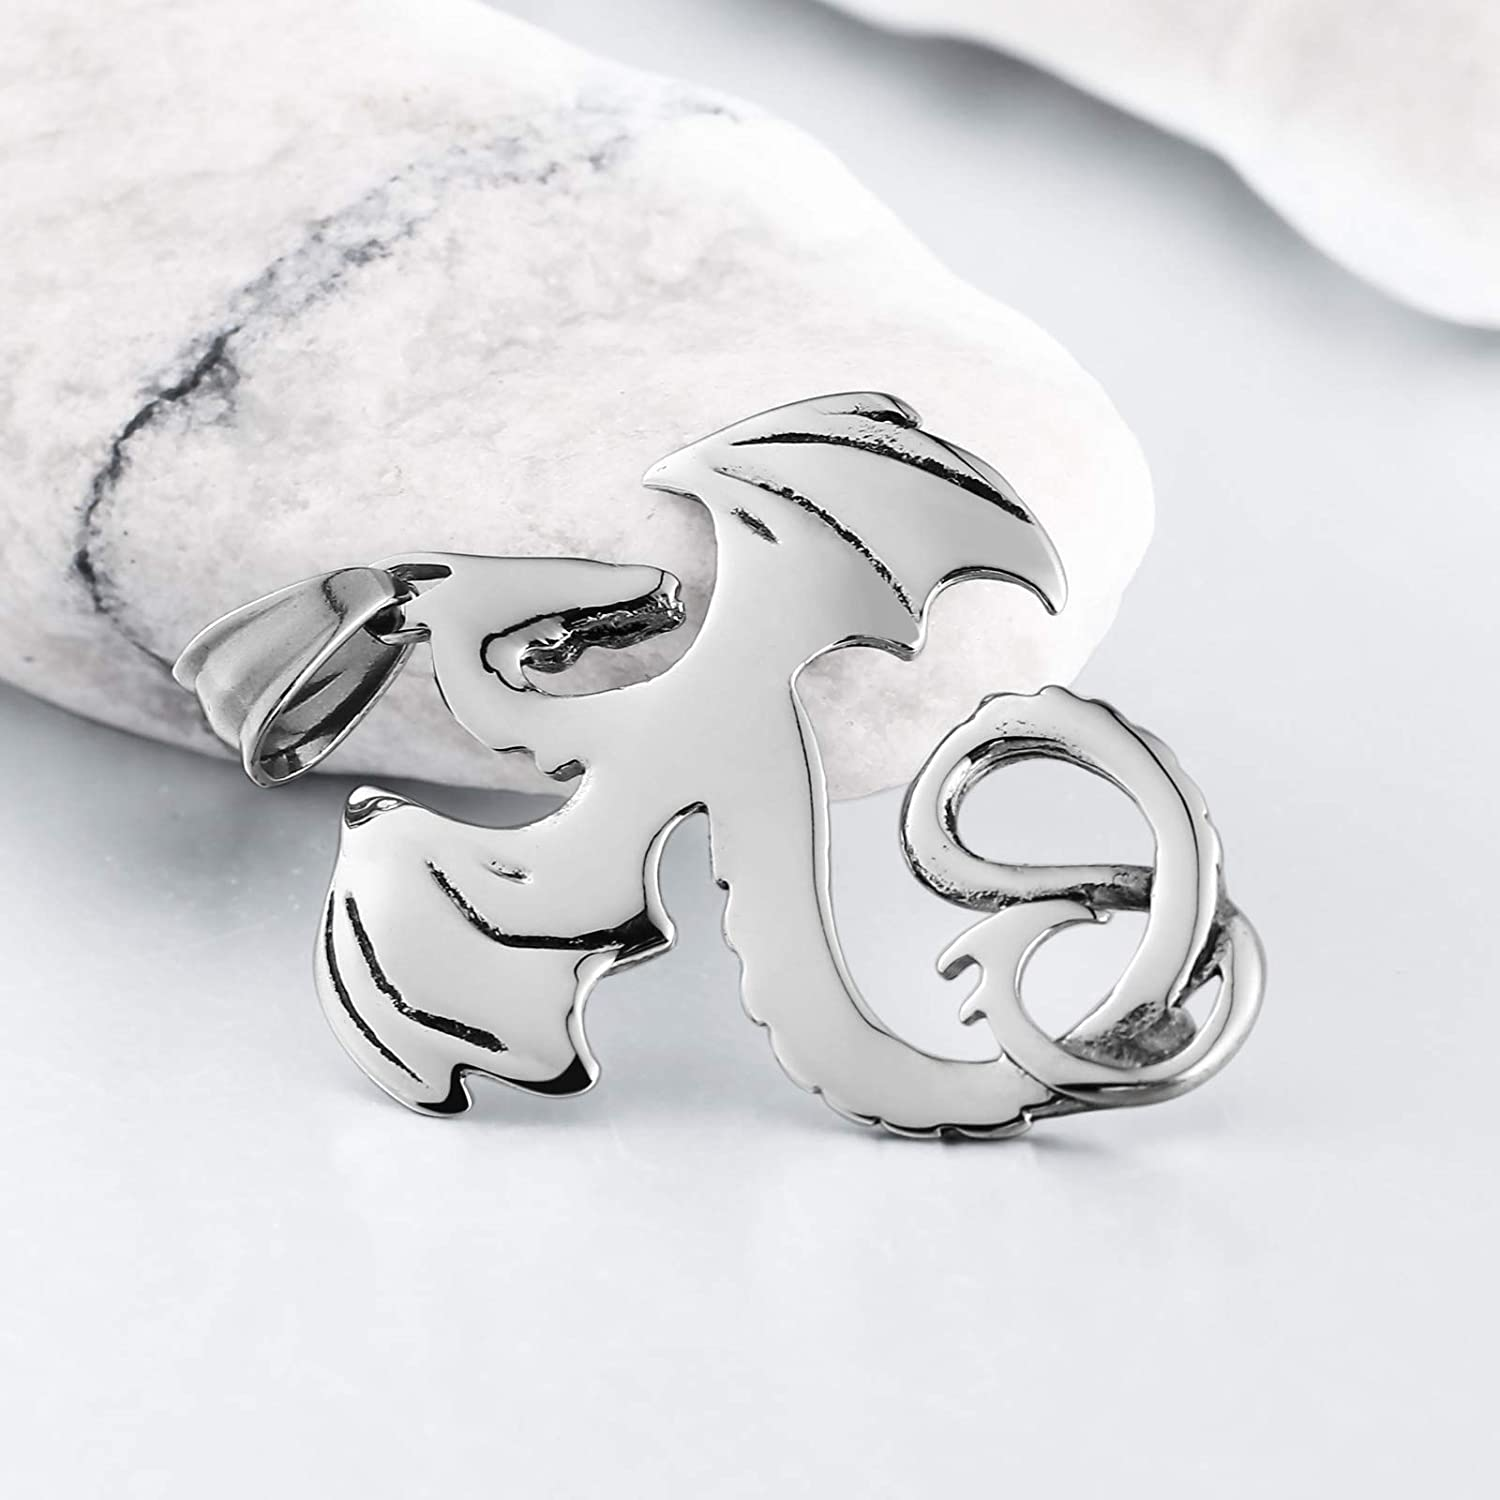 Bishilin Stainless Steel Necklace Men Seahorse Pendant Silver Necklace for Men Fashion